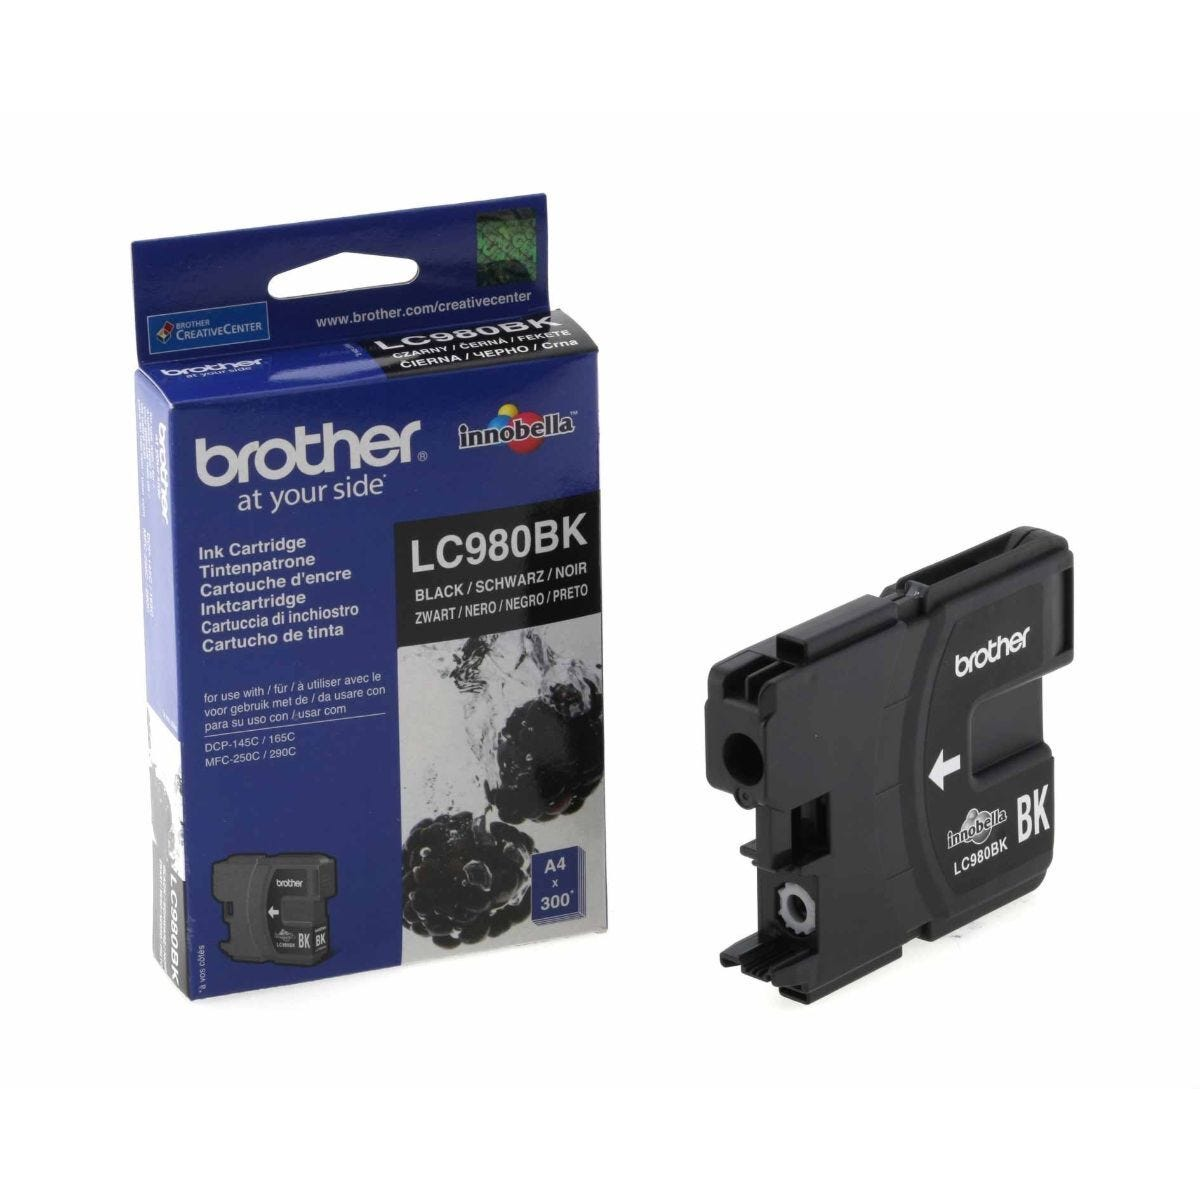 Brother LC980BK Ink Cartridge